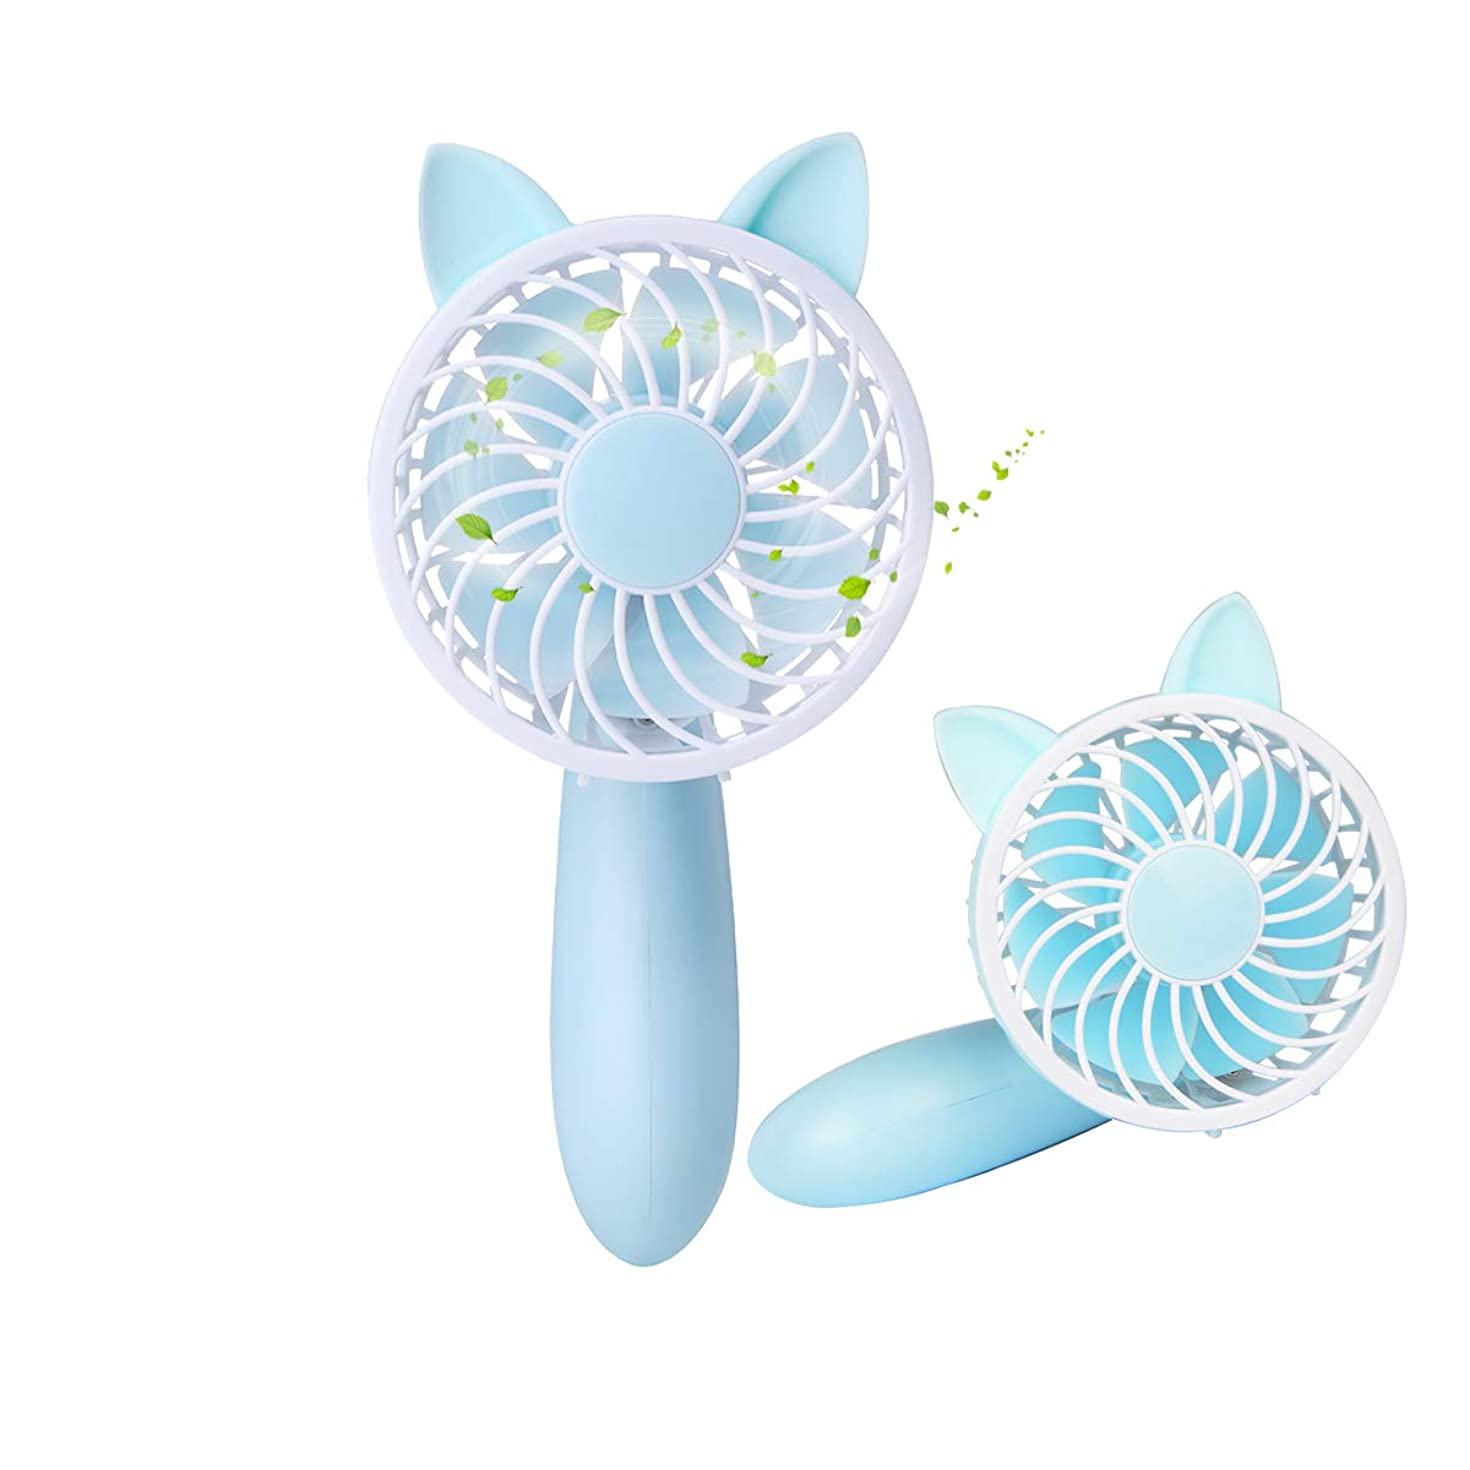 HoveBeaty Mini Handheld Fan, Portable Desk Table Personal Cooling Fan with USB Rechargeable Battery Operated Electric Fan for Office Room Outdoor Household Traveling (3 Speed, Blue)